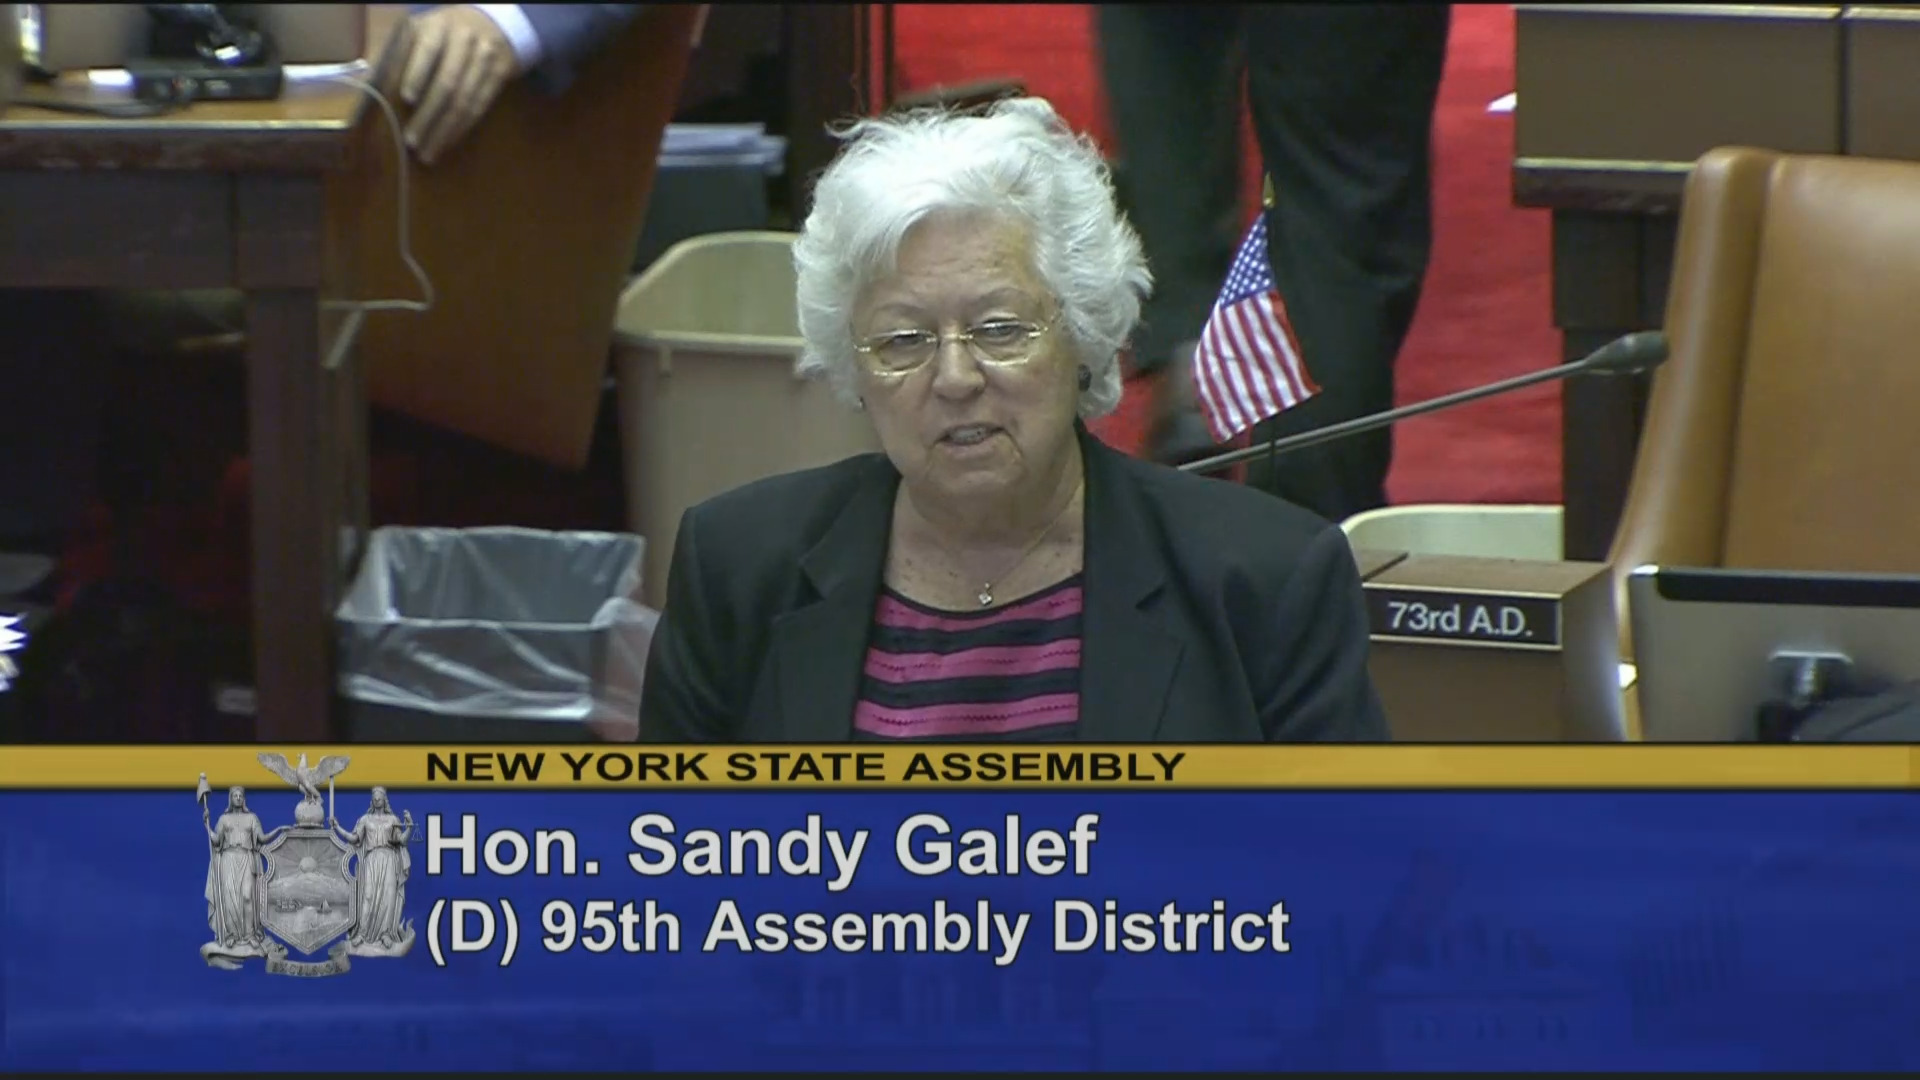 Assemblywoman Galef Supports Tax Exemptions for Nassau County